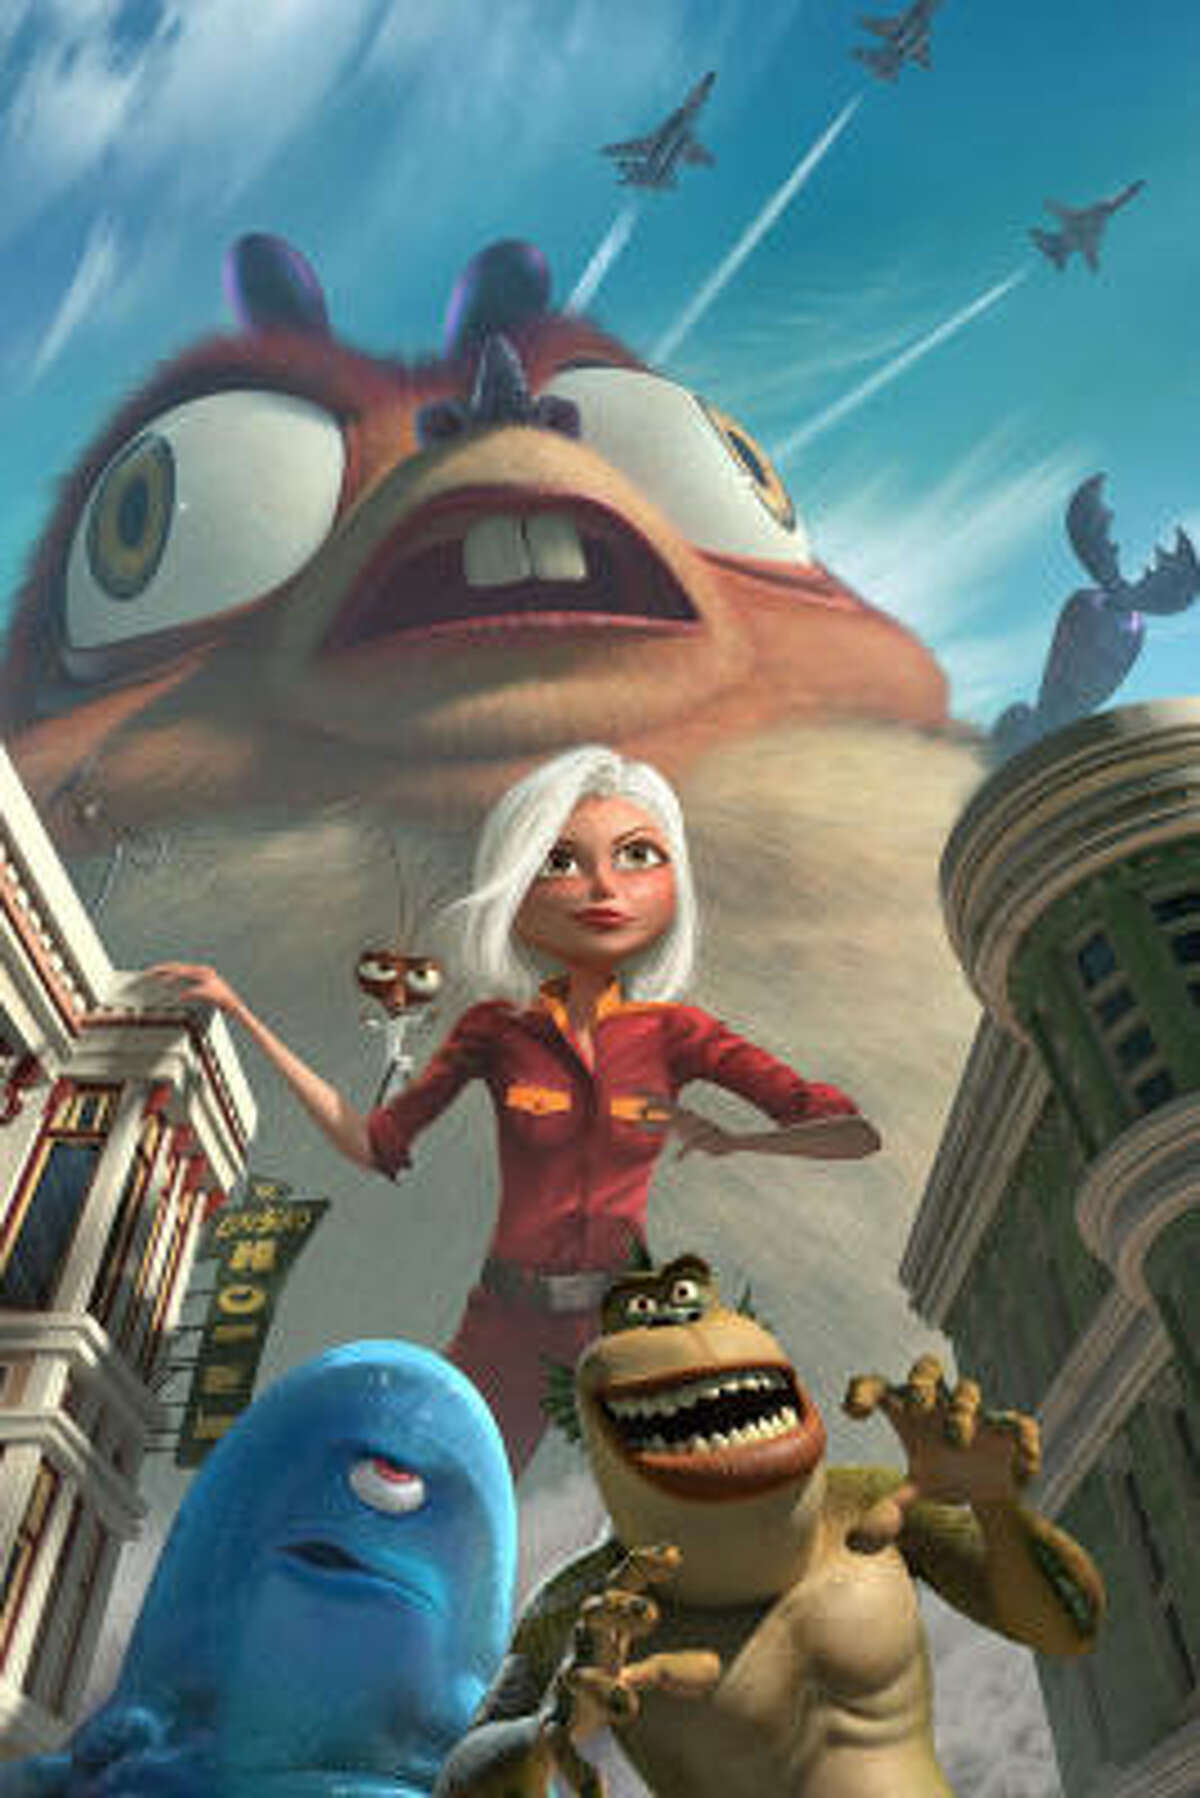 This week in DVD releases: Monsters vs. Aliens